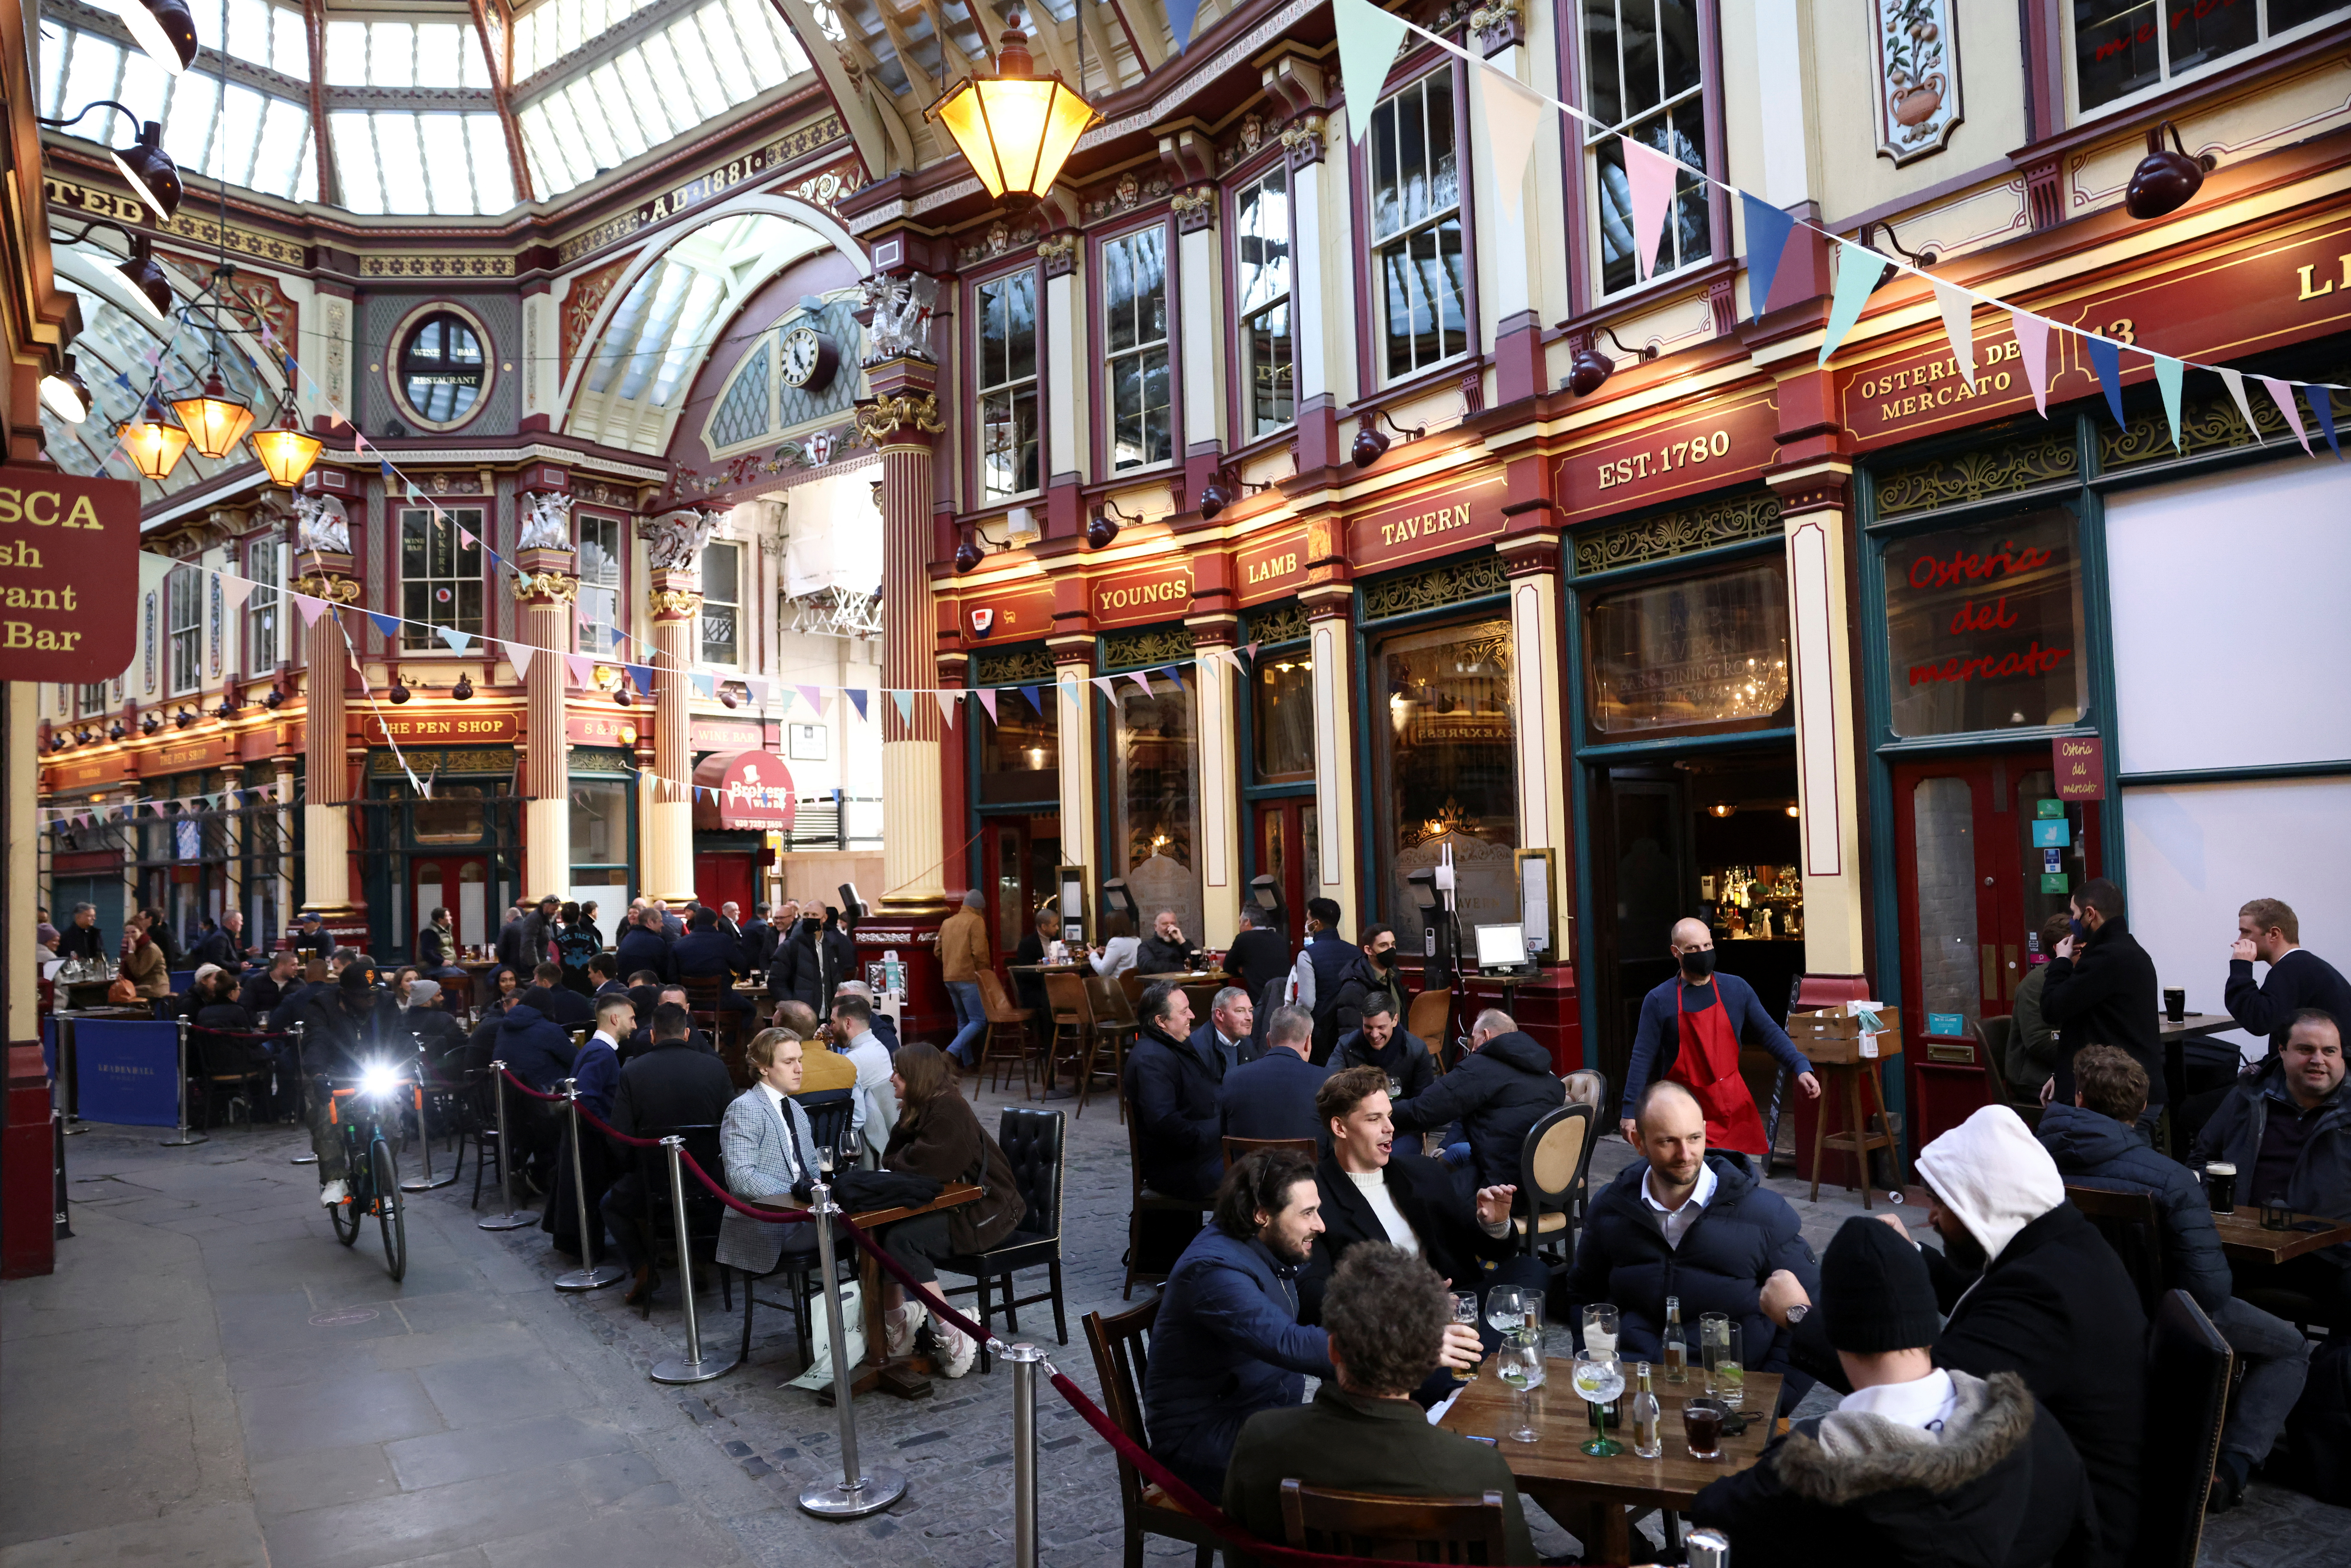 People sit at the terrace of a pub in Leadenhall market, as the coronavirus disease (COVID-19) restrictions ease, in London, Britain, April 16, 2021. REUTERS/Henry Nicholls